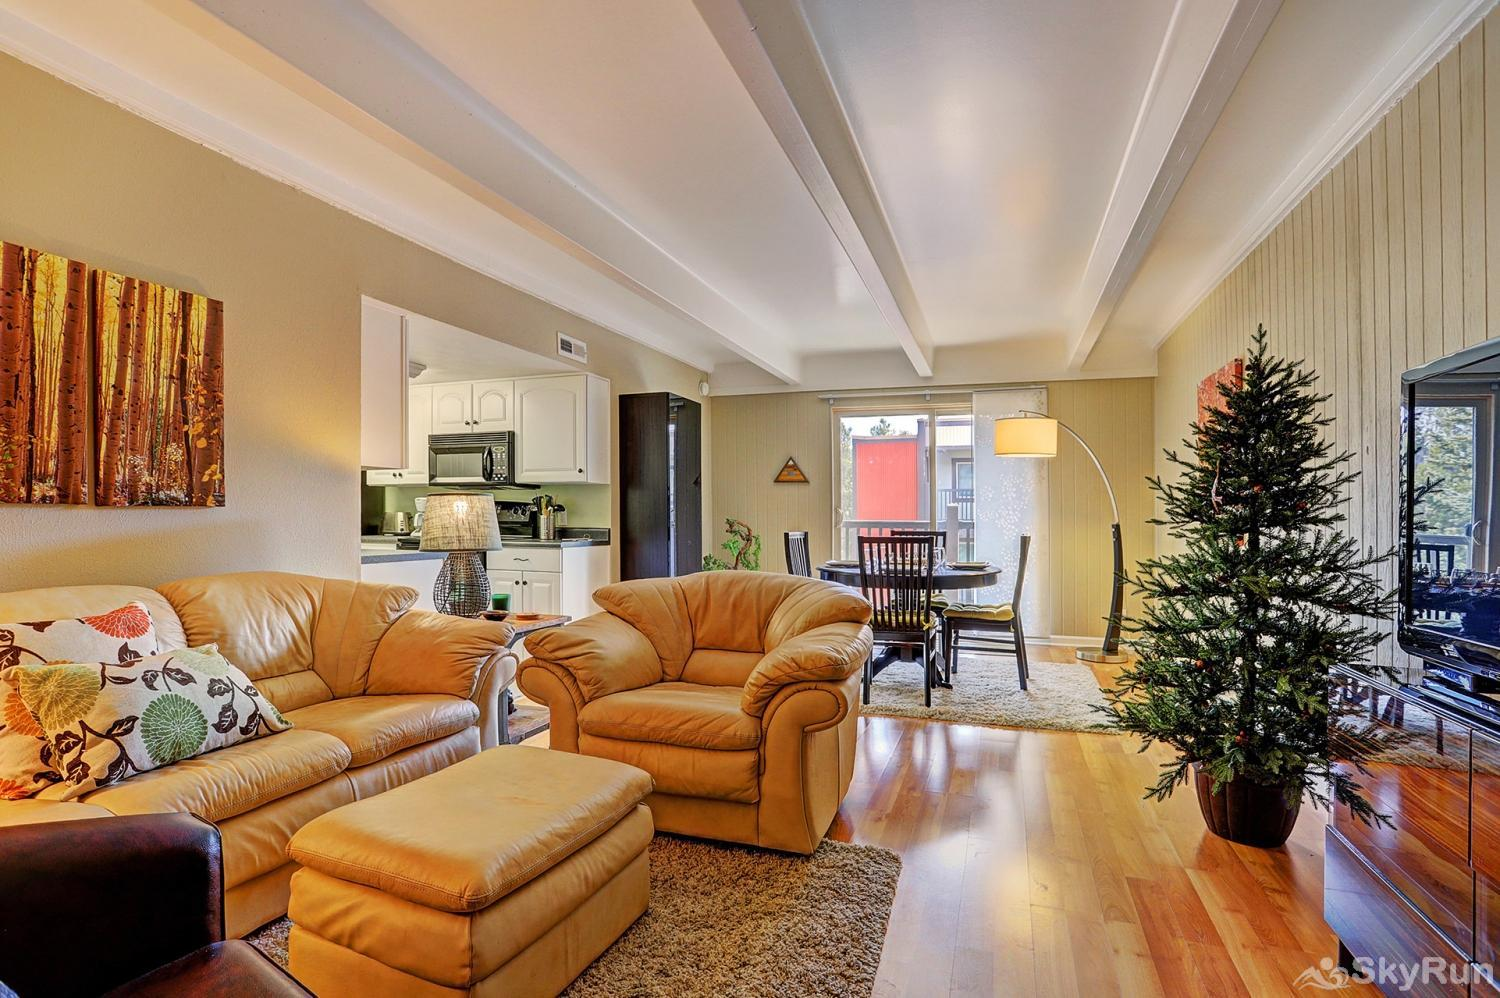 Ski and Racquet Club B106 Large, open living room to enjoy time with friends and family